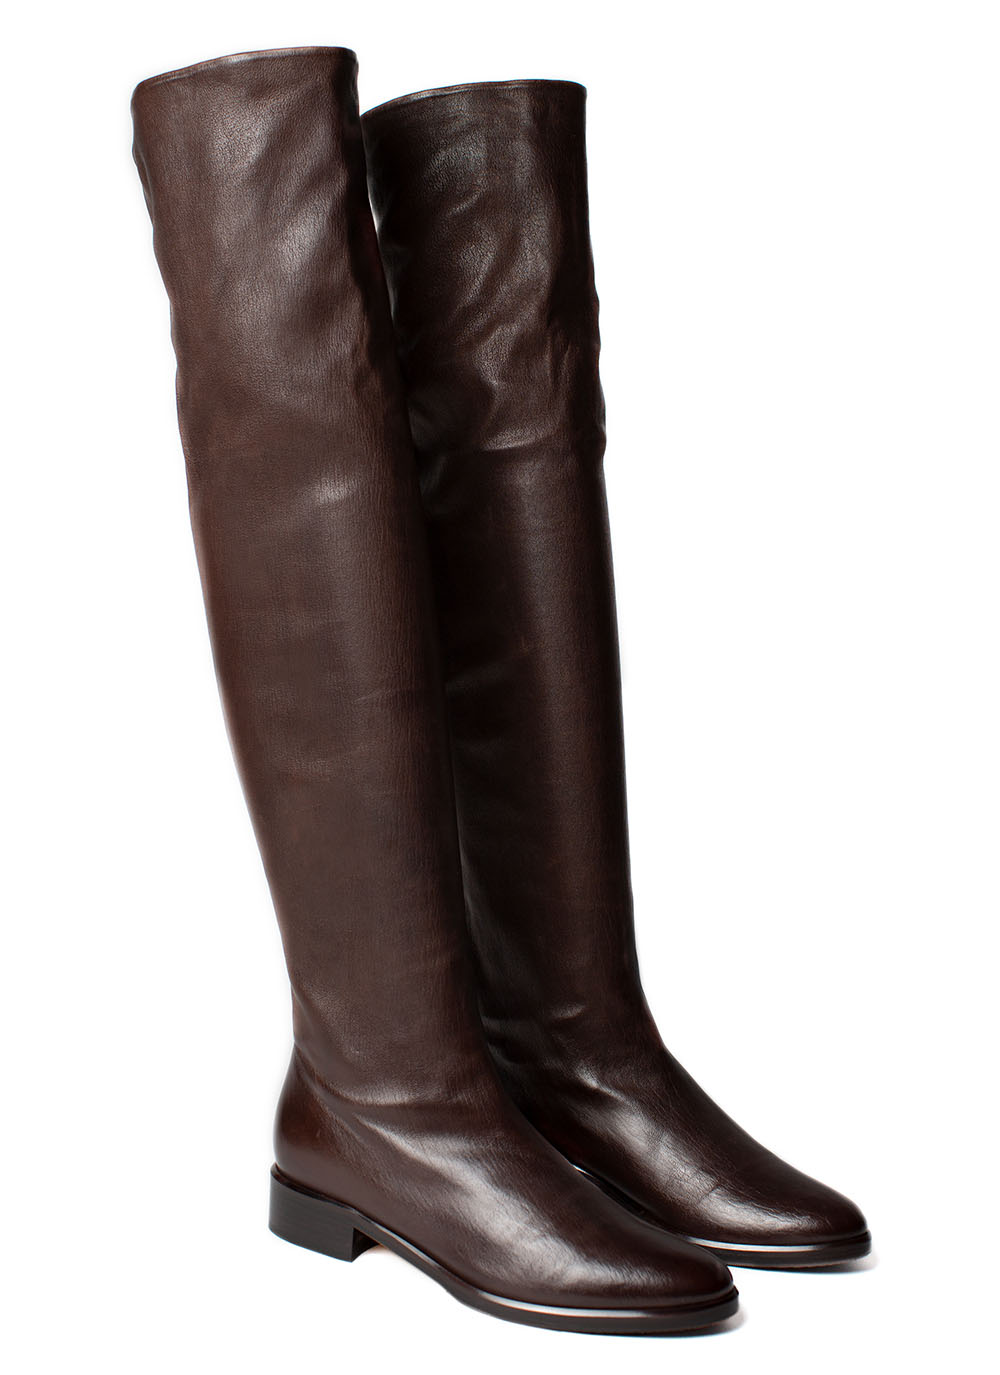 Overknee Boots Nappa leather, dark brown